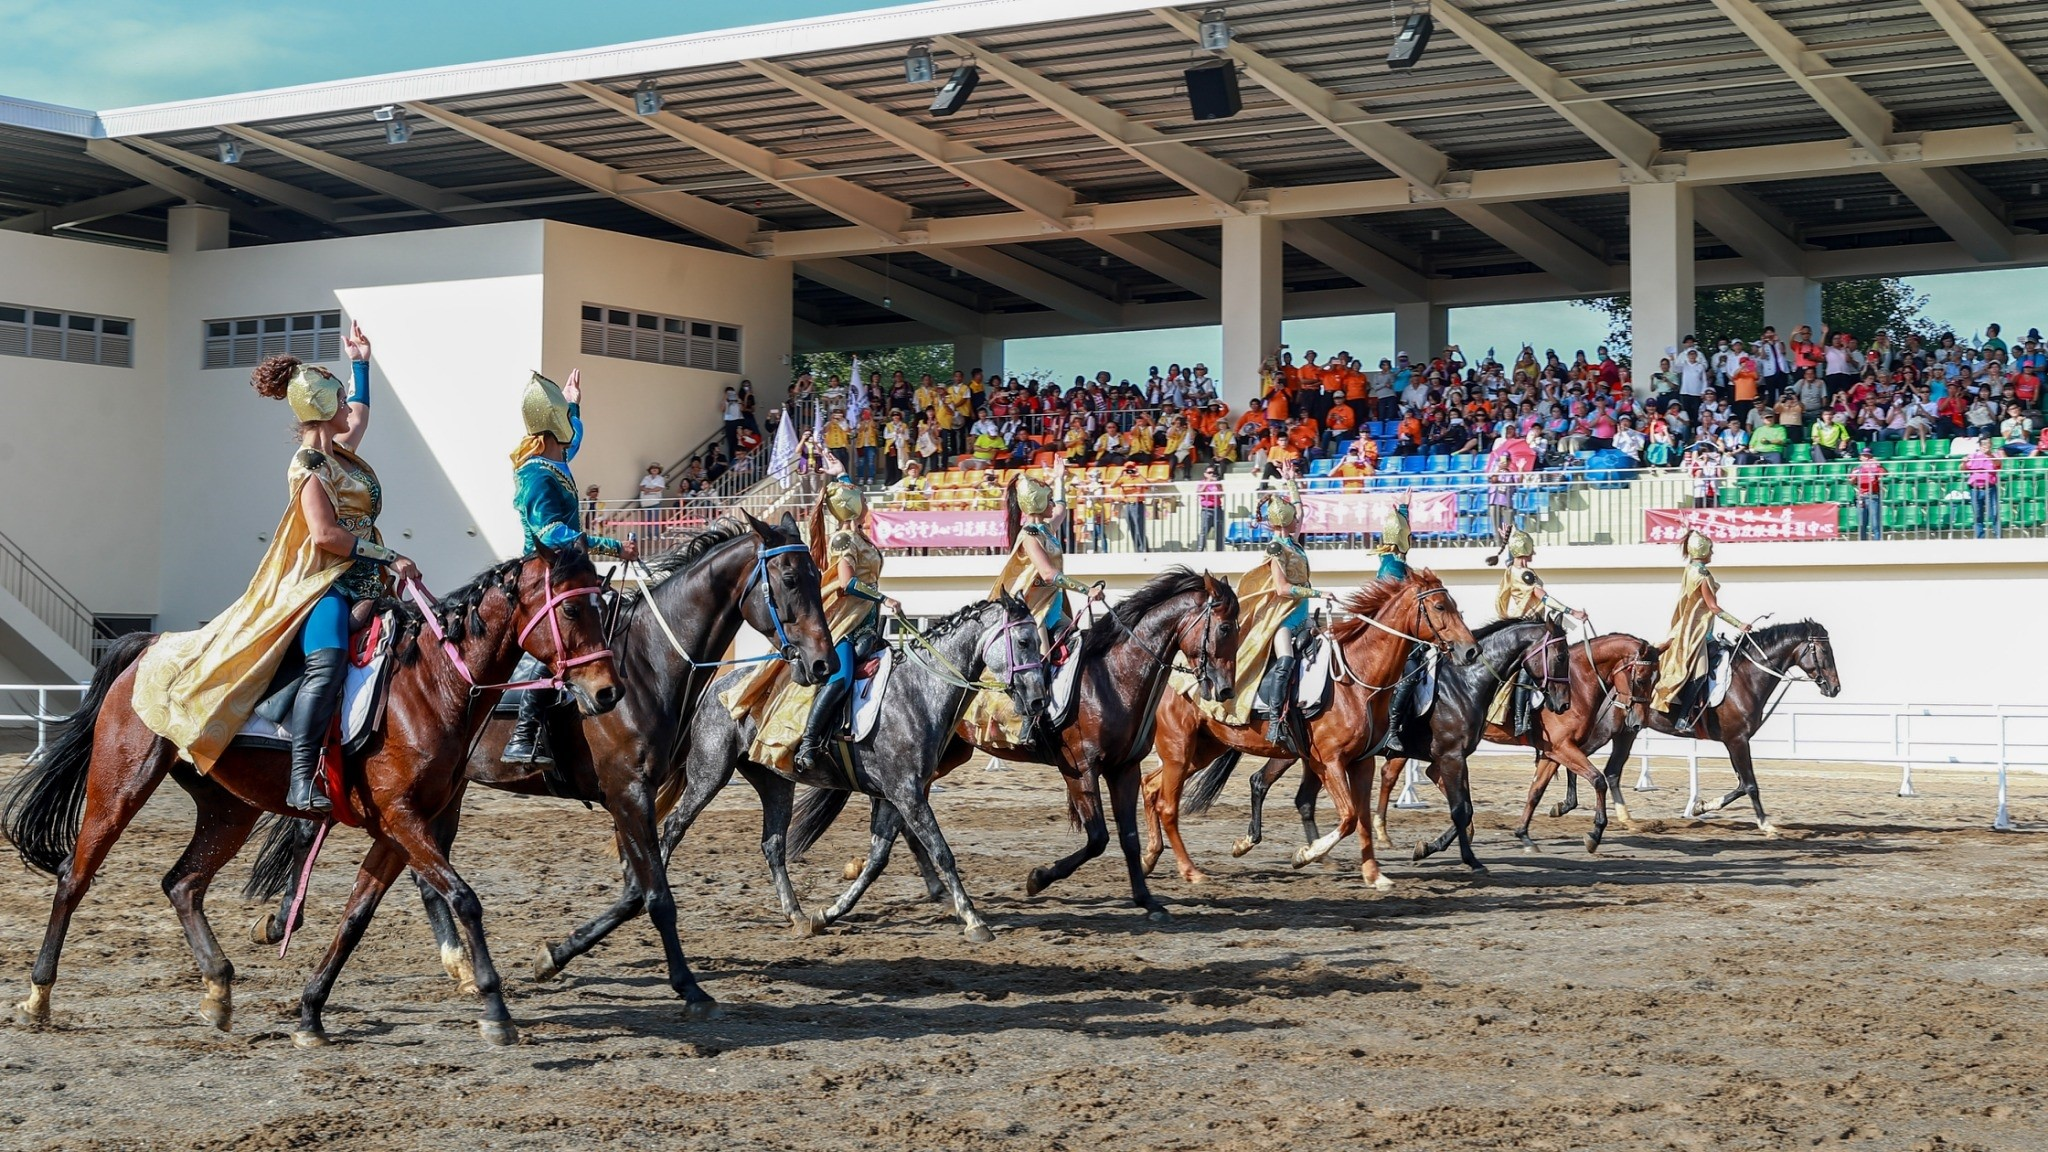 Flora expo Houli Horse Ranch Kazakh equestrian performance wins a standing ovation from the audience